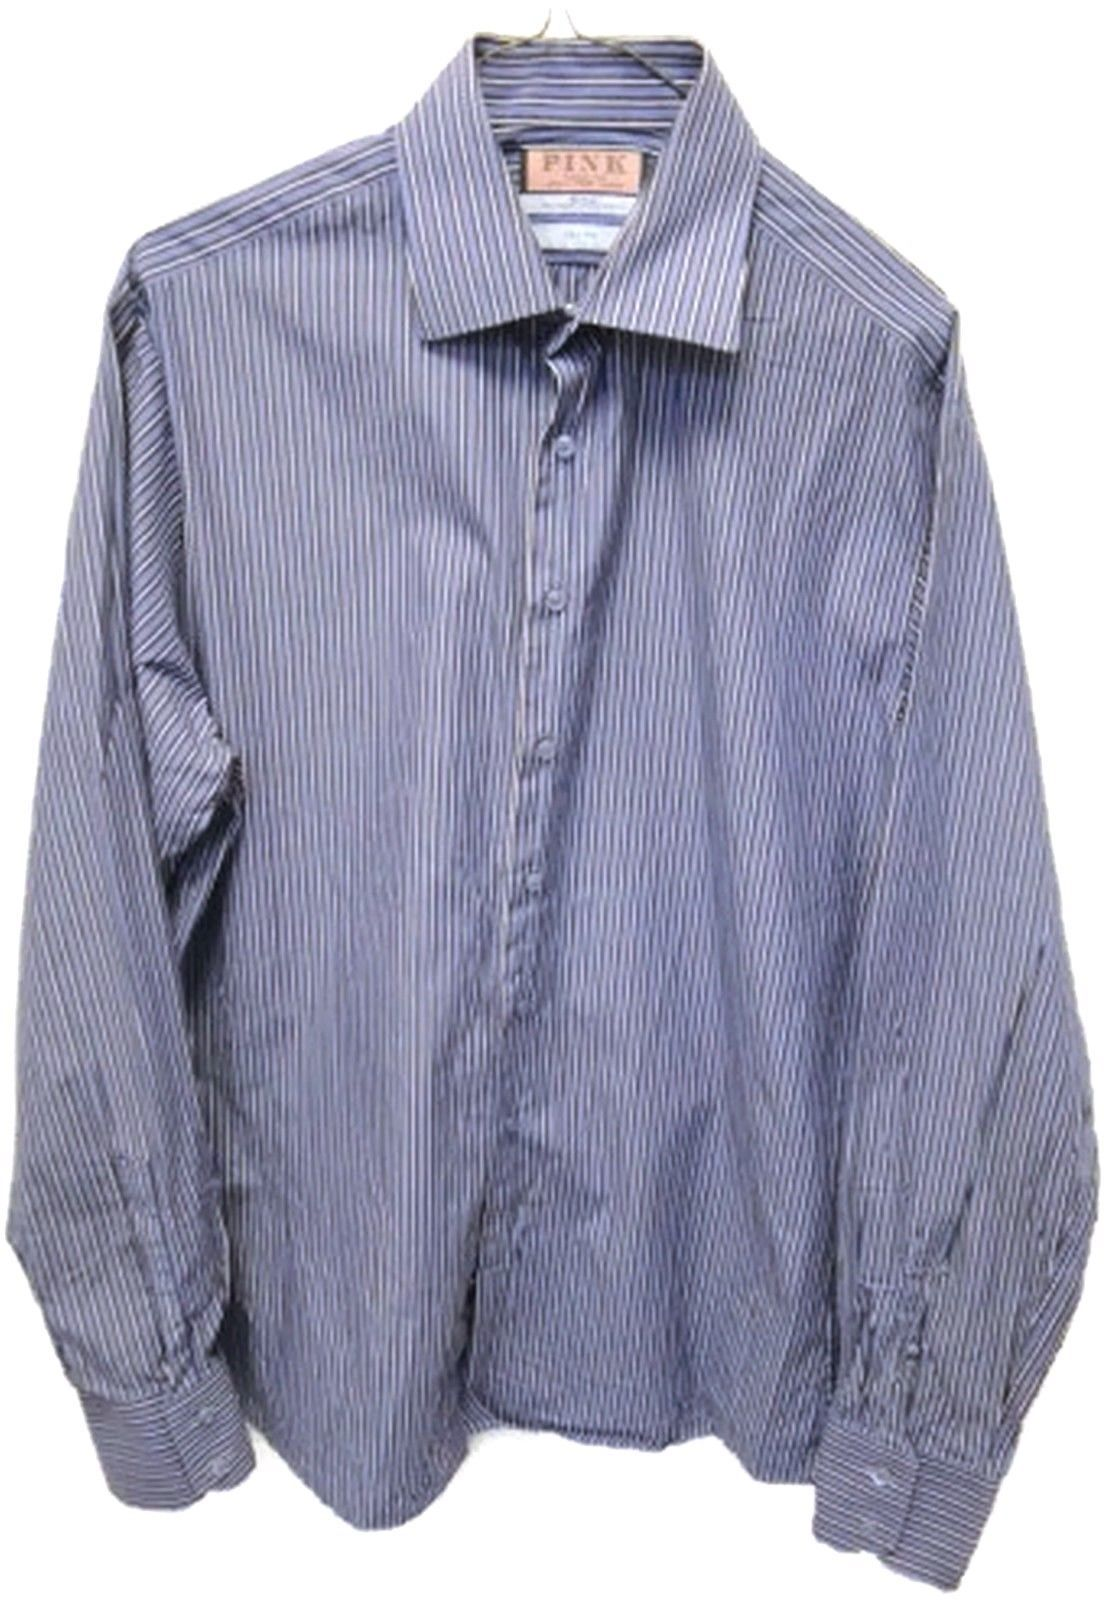 eefd39f551e88c Thomas Pink Slim Fit Shirt 16 1/2 Blue White and 26 similar items. 57